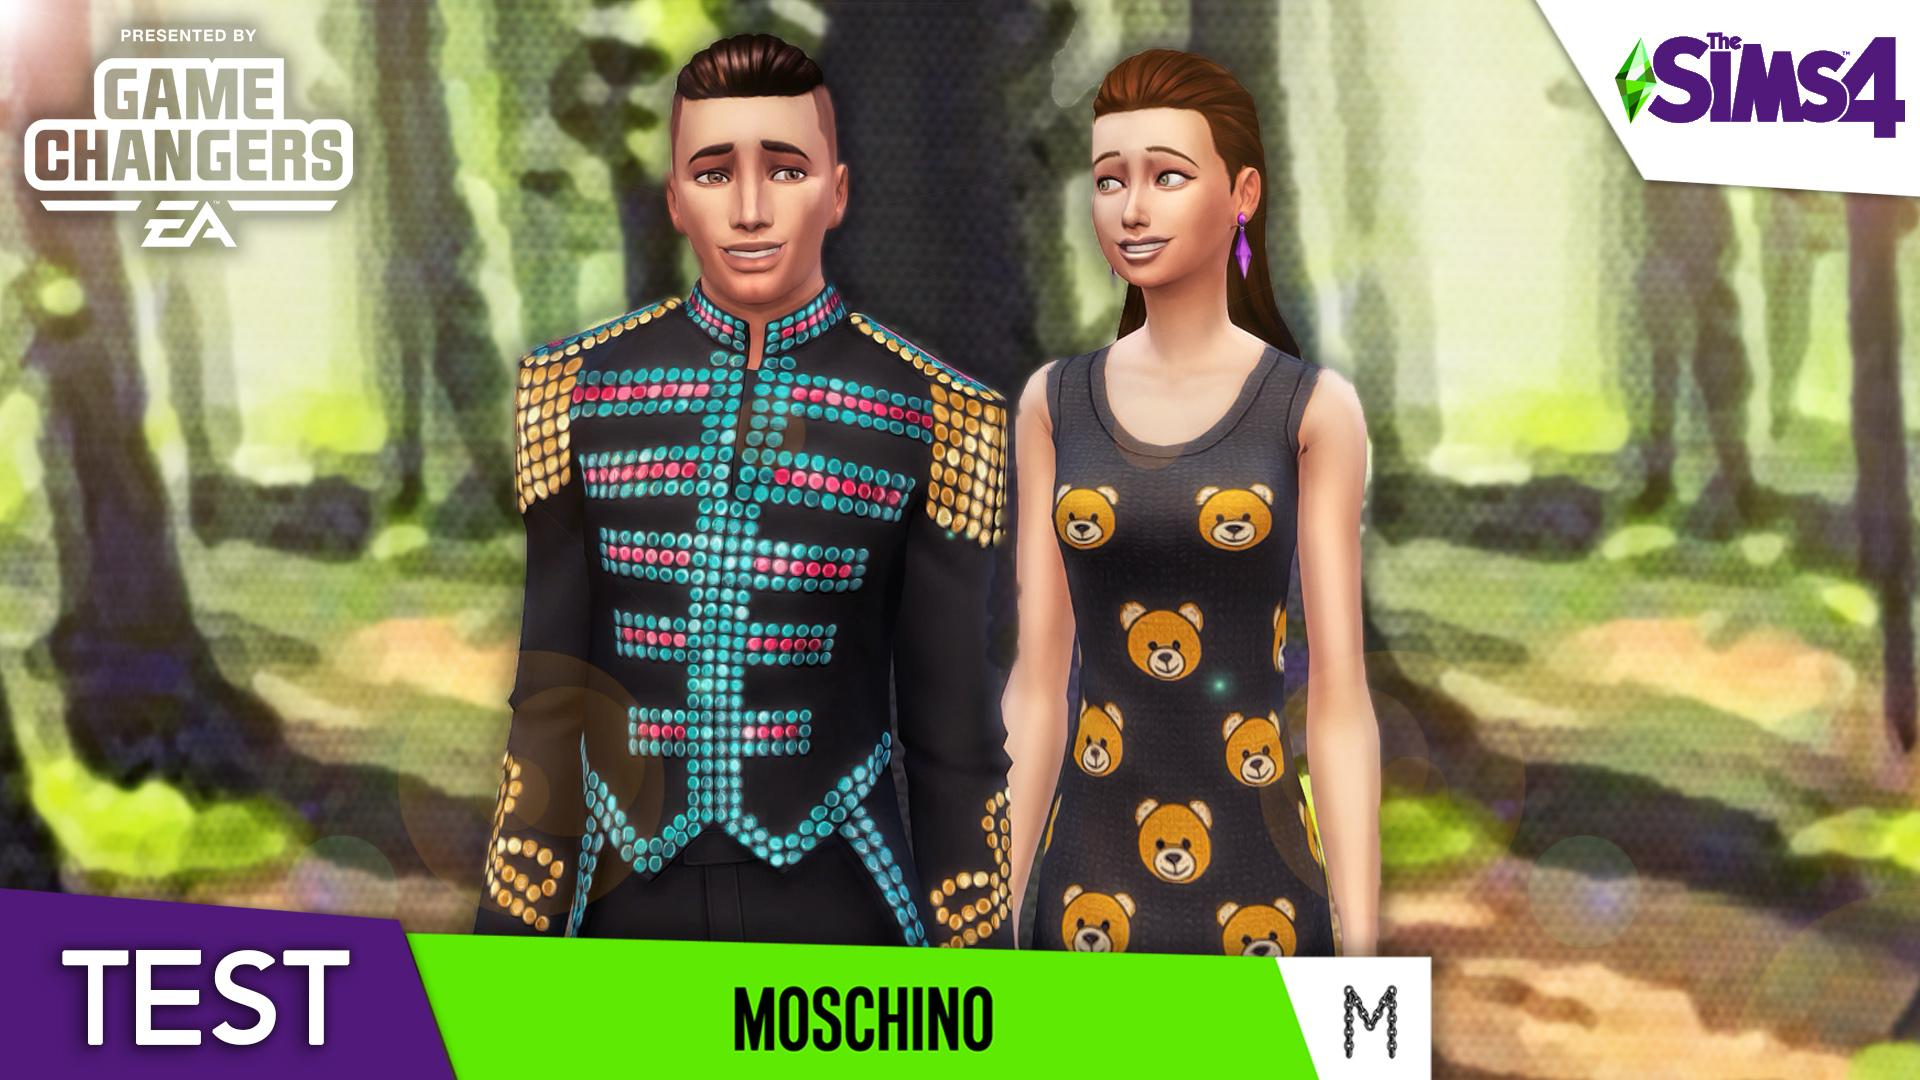 MOSCHINO 📸 CAS, OBJETS & GAMEPLAY    LES SIMS 4